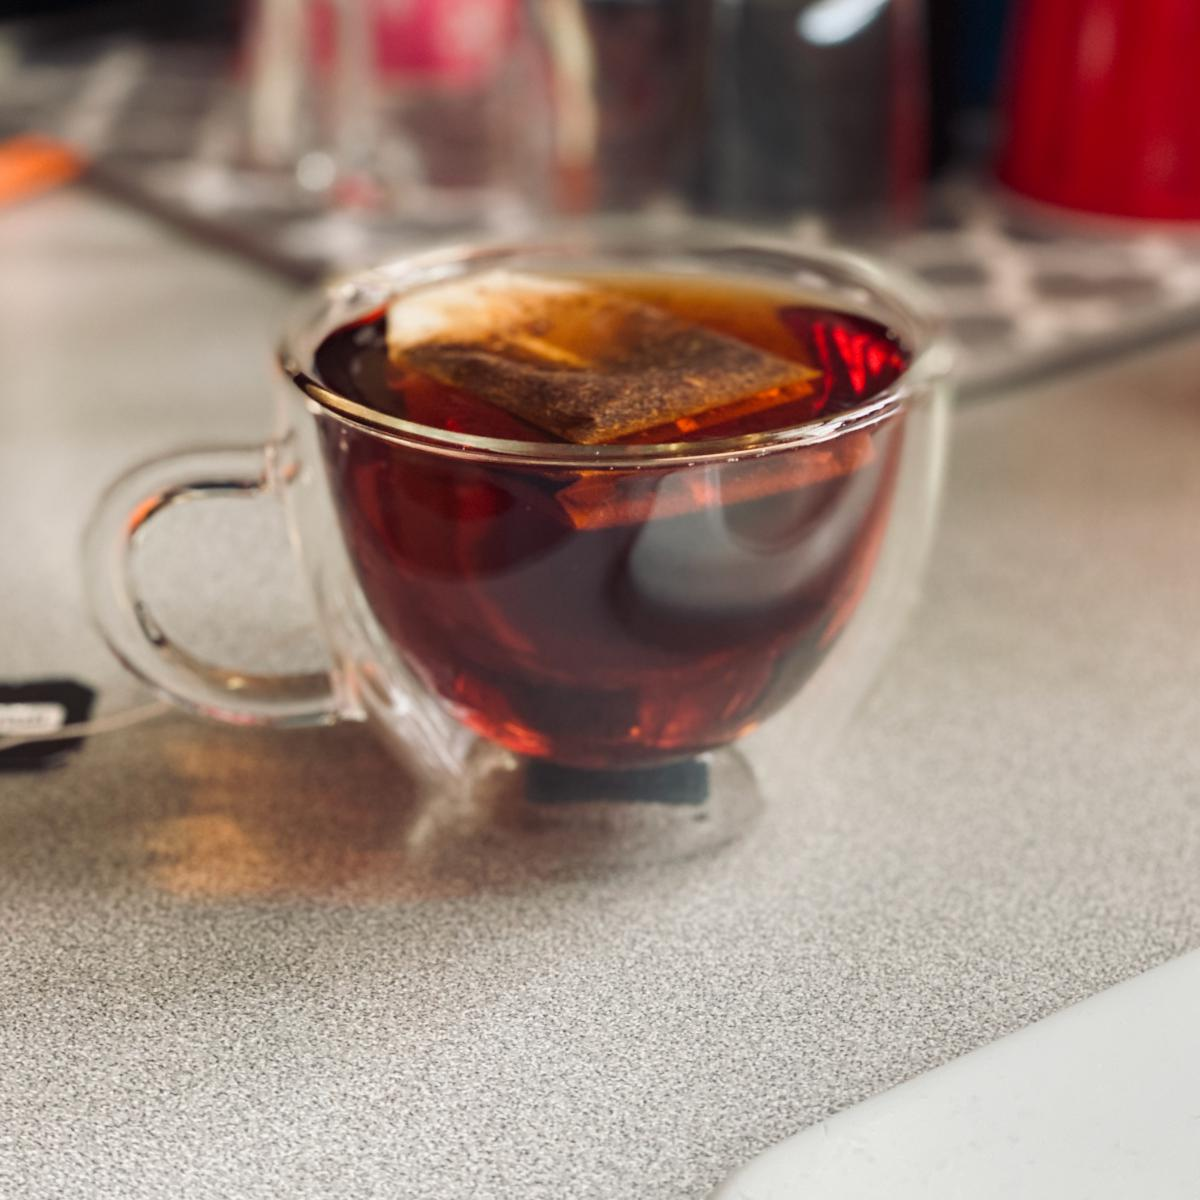 Rooibos tea steeping in a clear cup